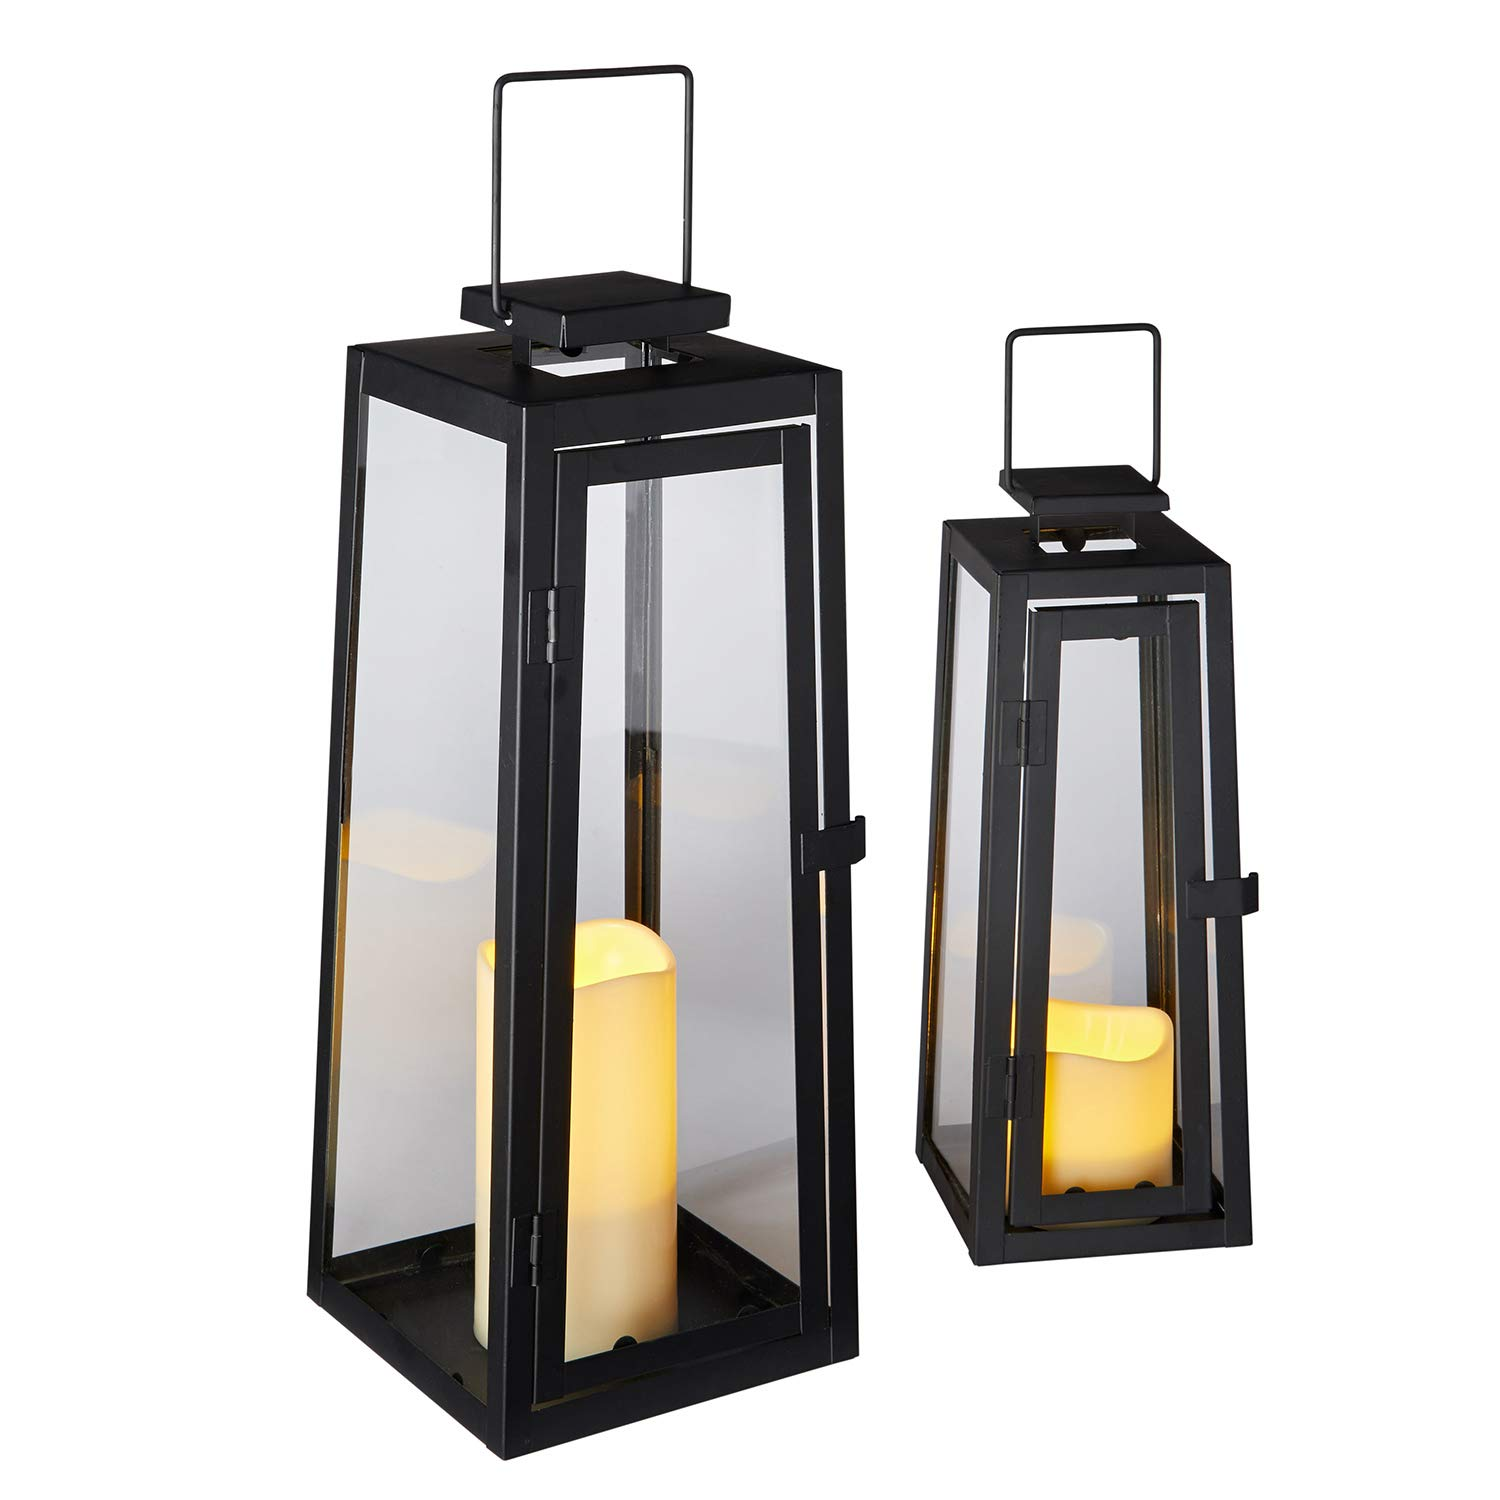 Duo of black metal lanterns are a stylish addition to both inside or outside your home. Each lantern houses one flameless LED candle which gives a warm flickering glow just like the real thing.